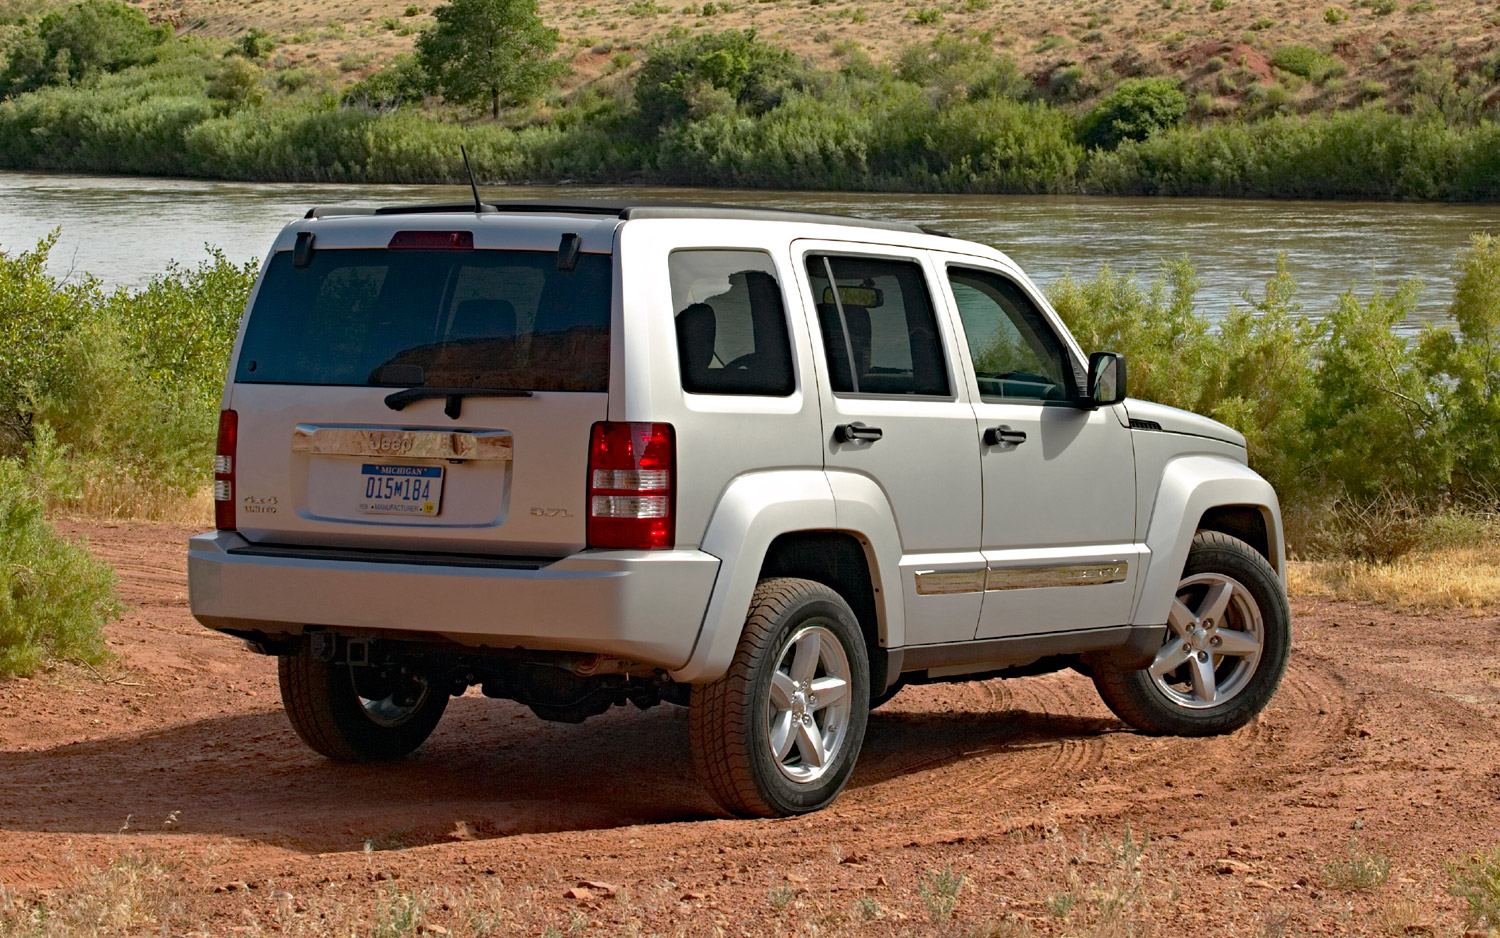 Jeep Liberty 2013 Wallpaper Free For Iphone